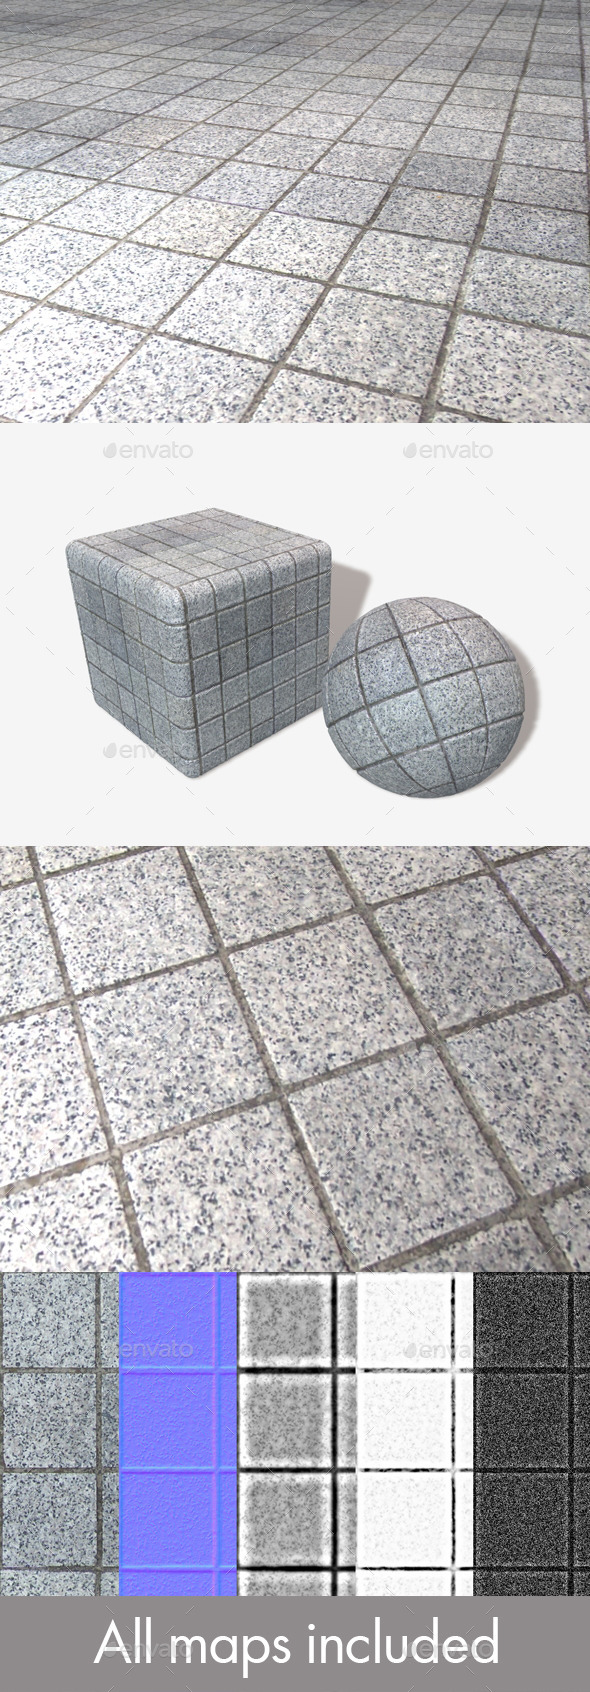 3DOcean Outdoor Square Floor Tiles Seamless Texture 11617644